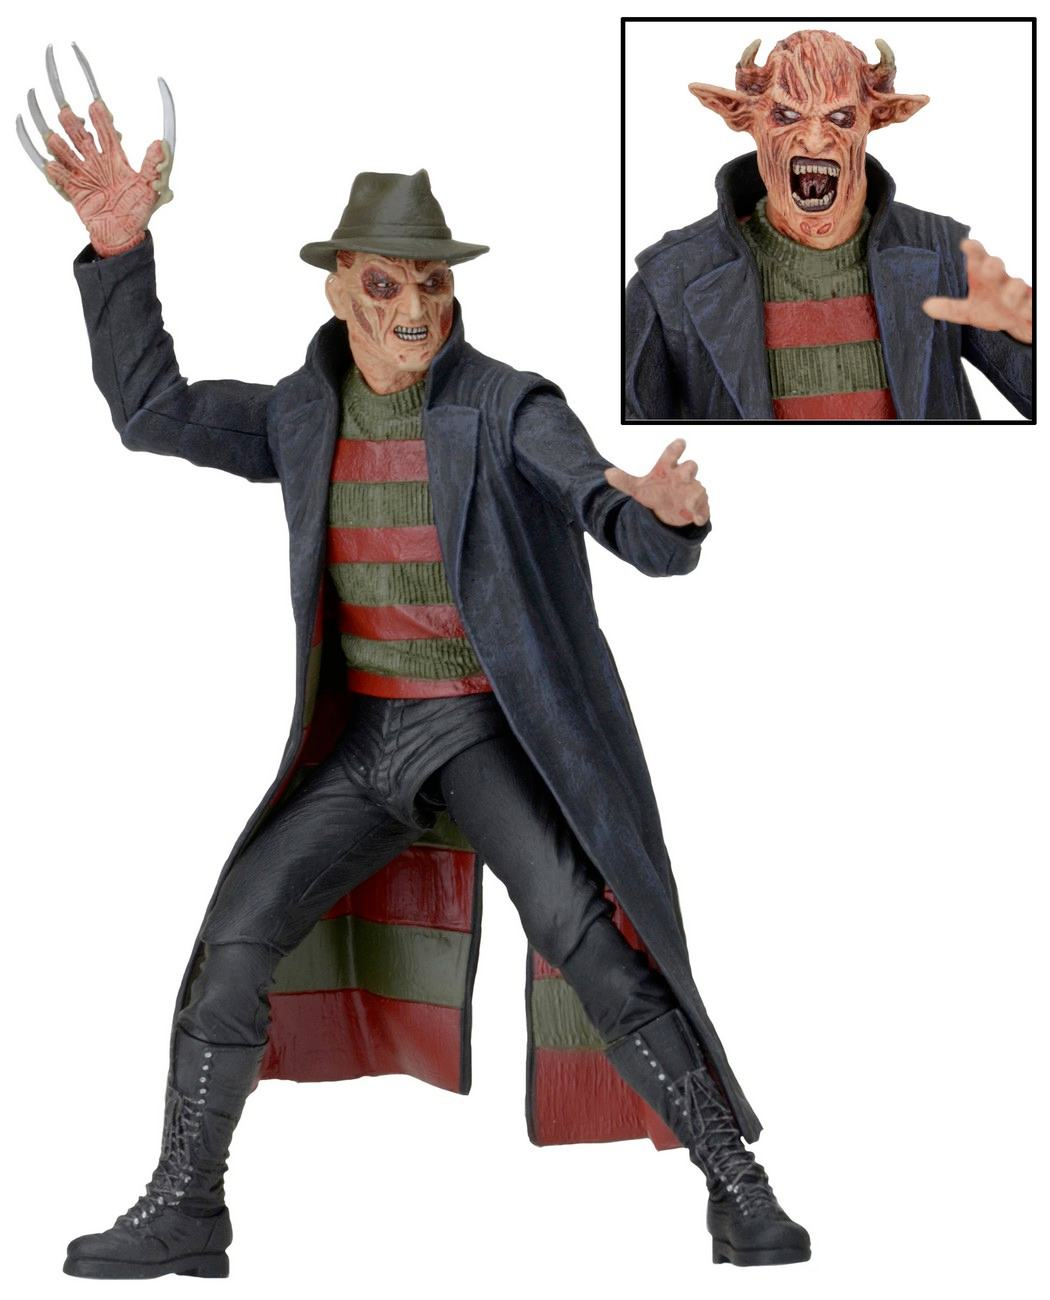 New-Nightmare-Freddy-7-Inch-Nightmare-on-Elm-Street-Action-Figure-07